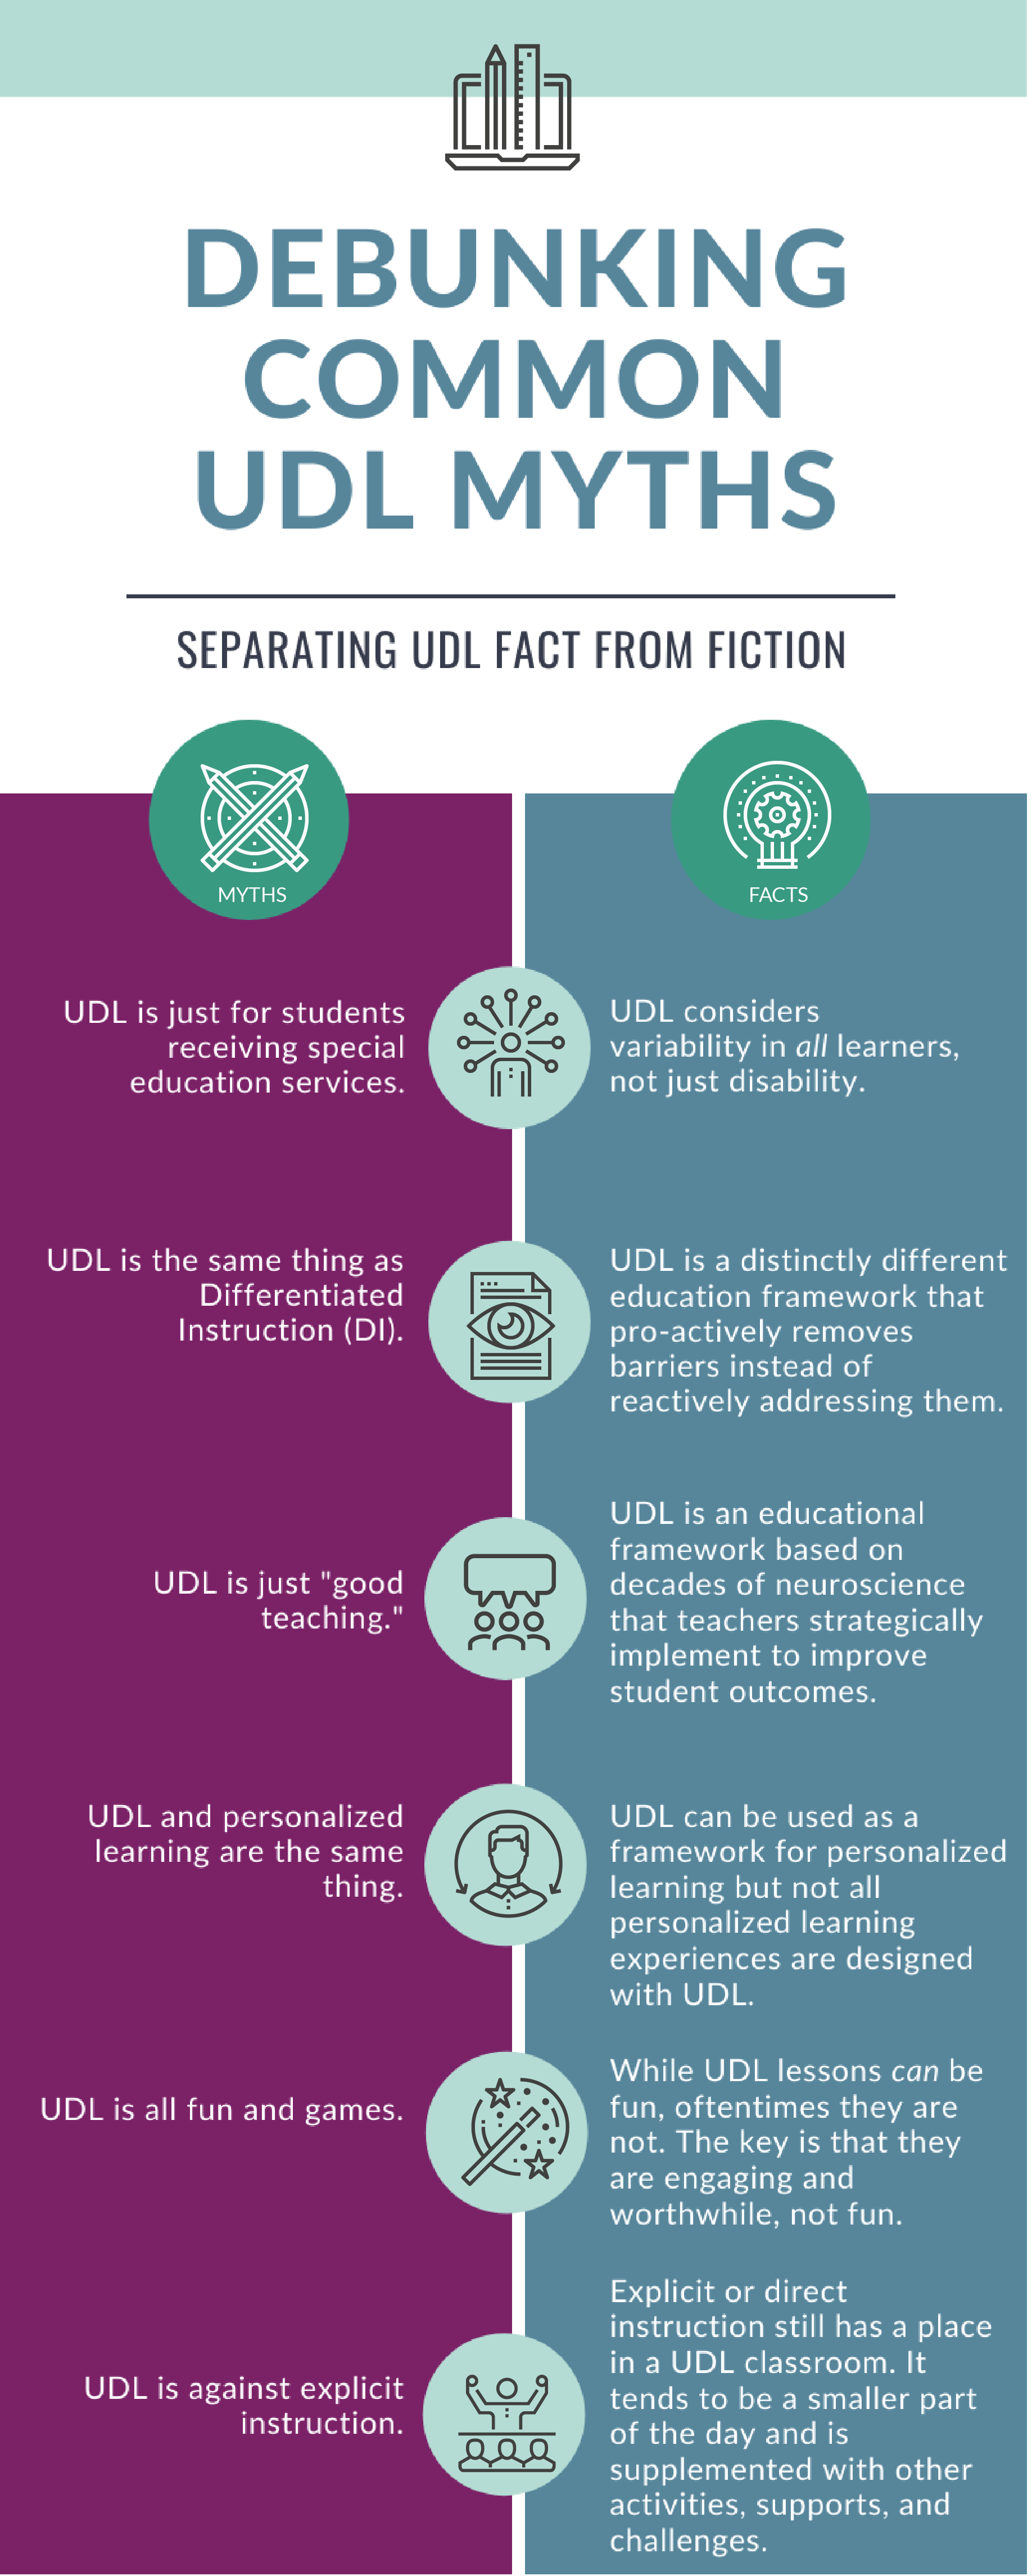 Debunking UDL Myths